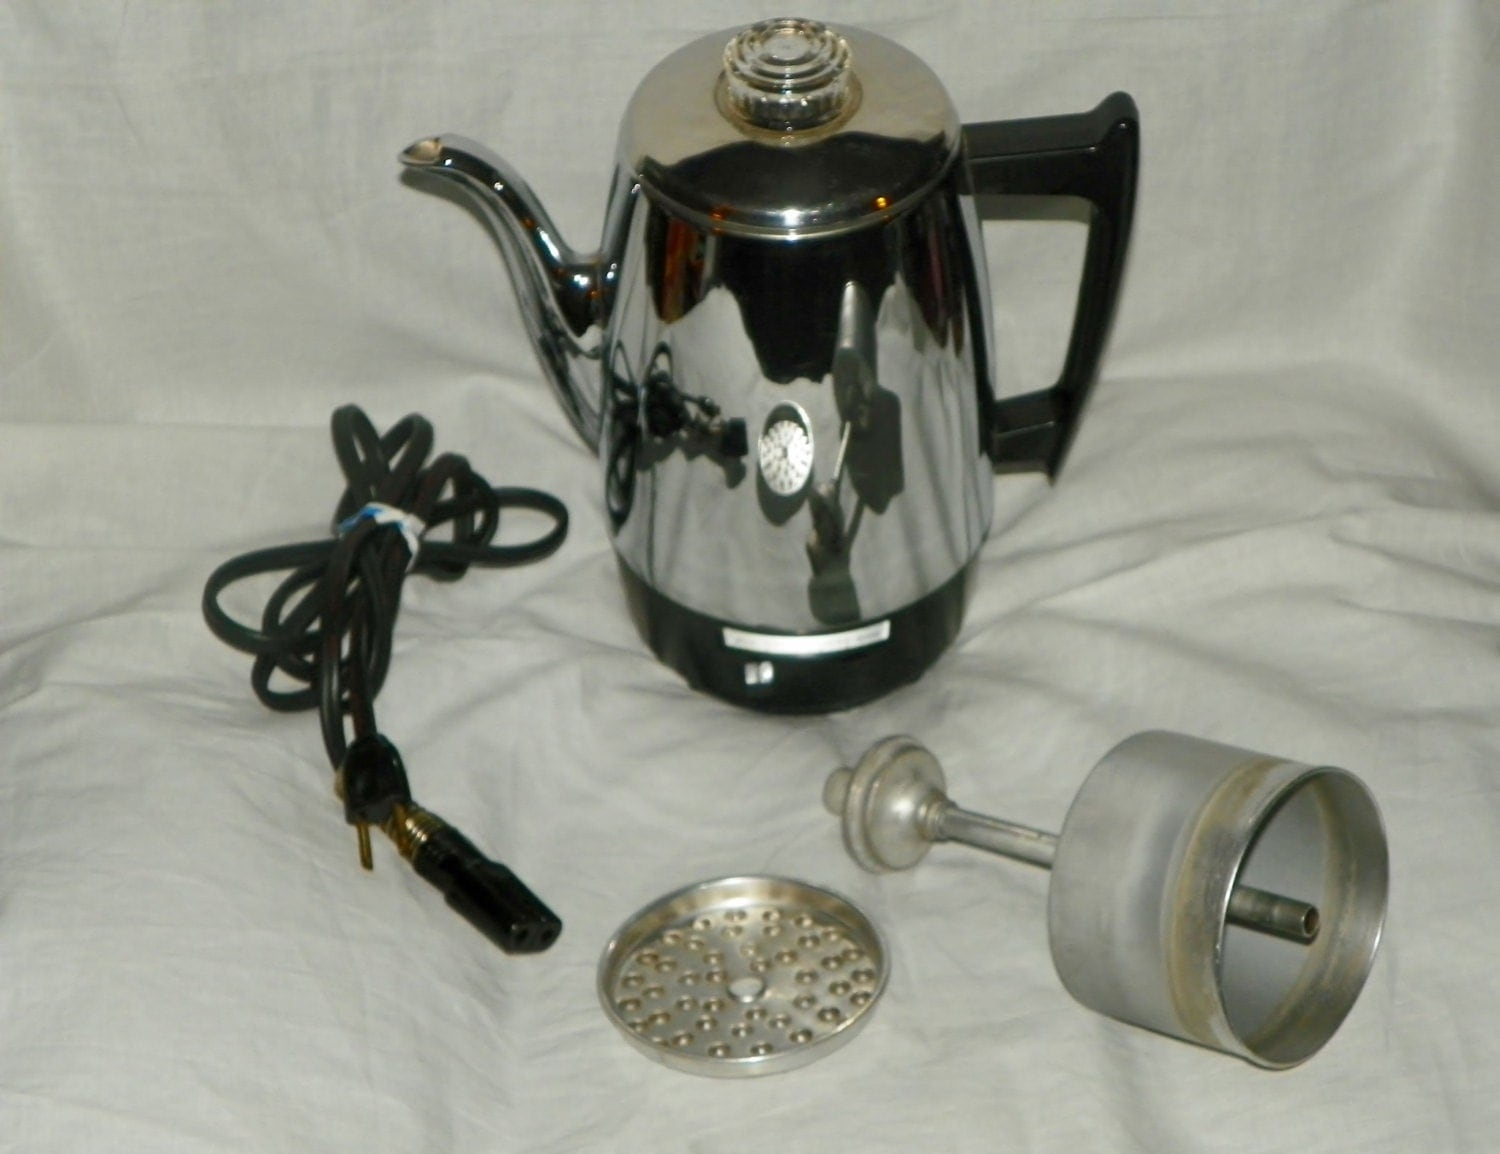 6 cups house stainless steel stovetop espresso coffee maker moka pot latte percolator